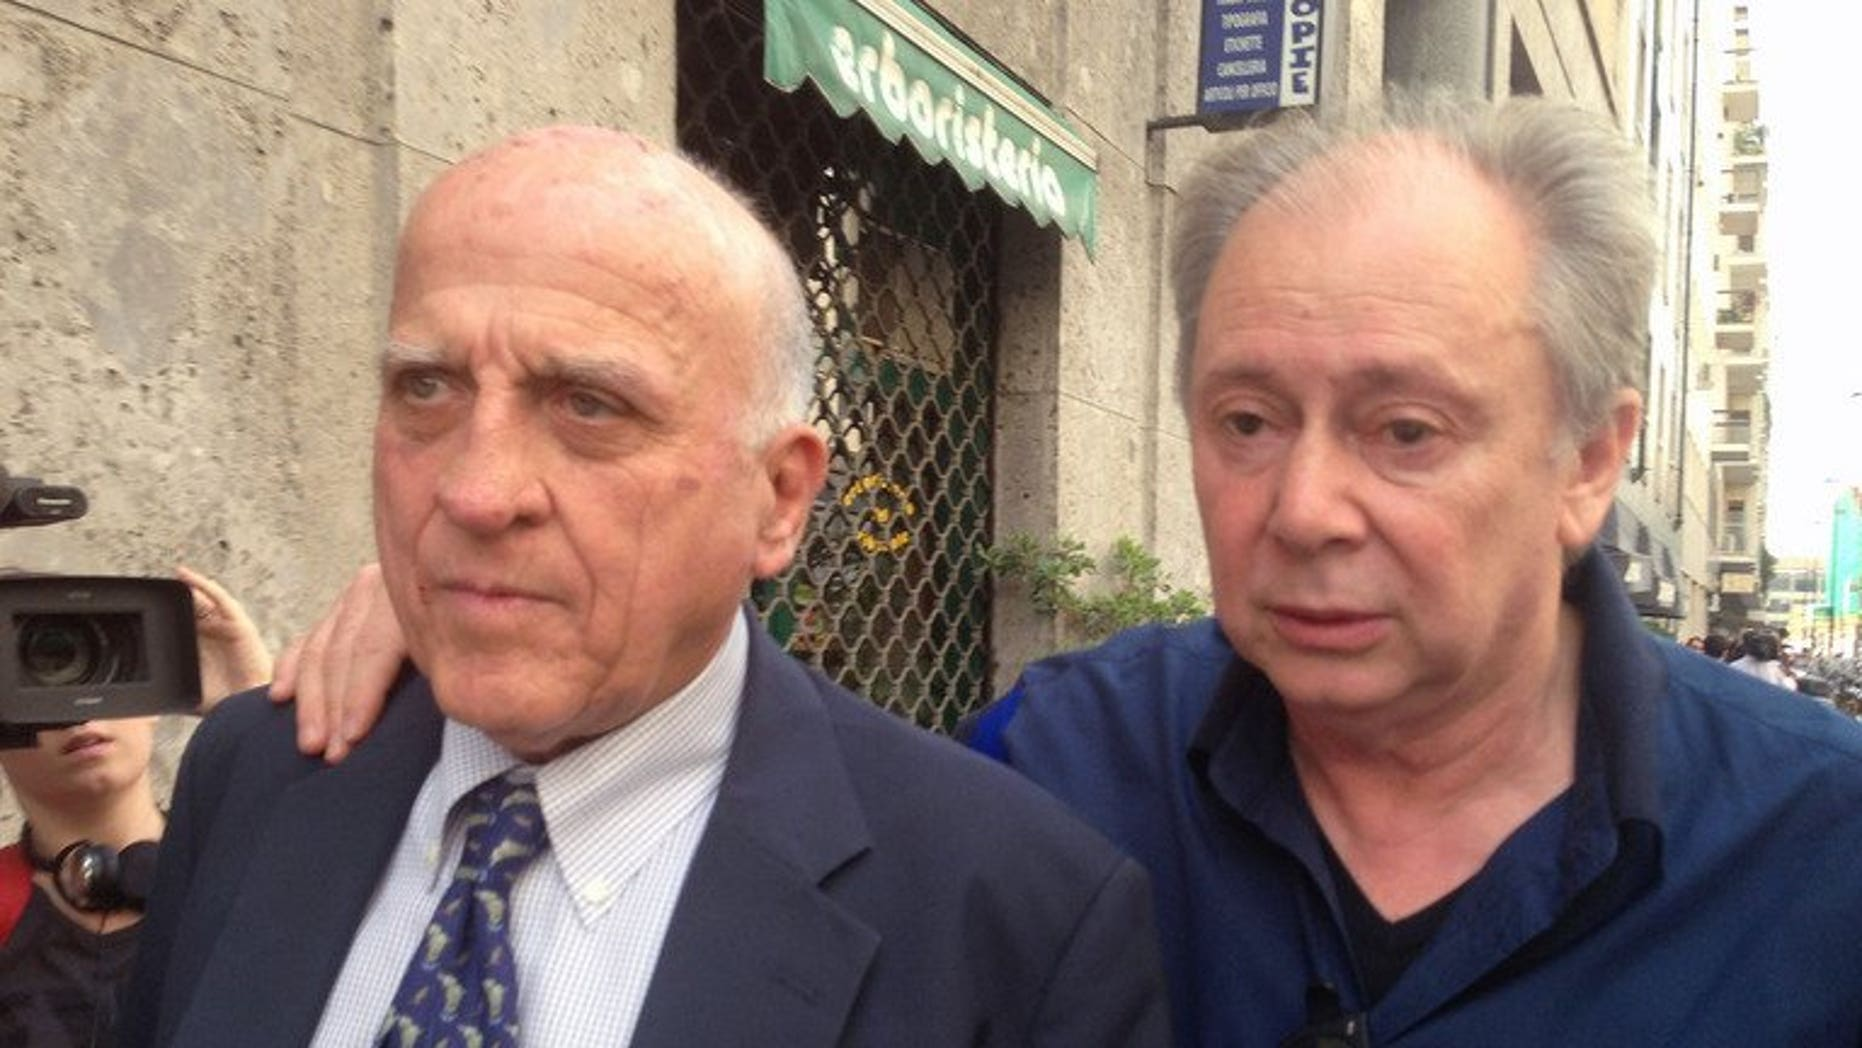 Italian entertainment agent Lele Mora (right) and his lawyer Gianluca Maris arrive at a court in Milan on July 19, 2013. A Milan court on Friday found three of Silvio Berlusconi's associates guilty of procuring prostitutes for racy parties held at the former Italian premier's Milan villa.